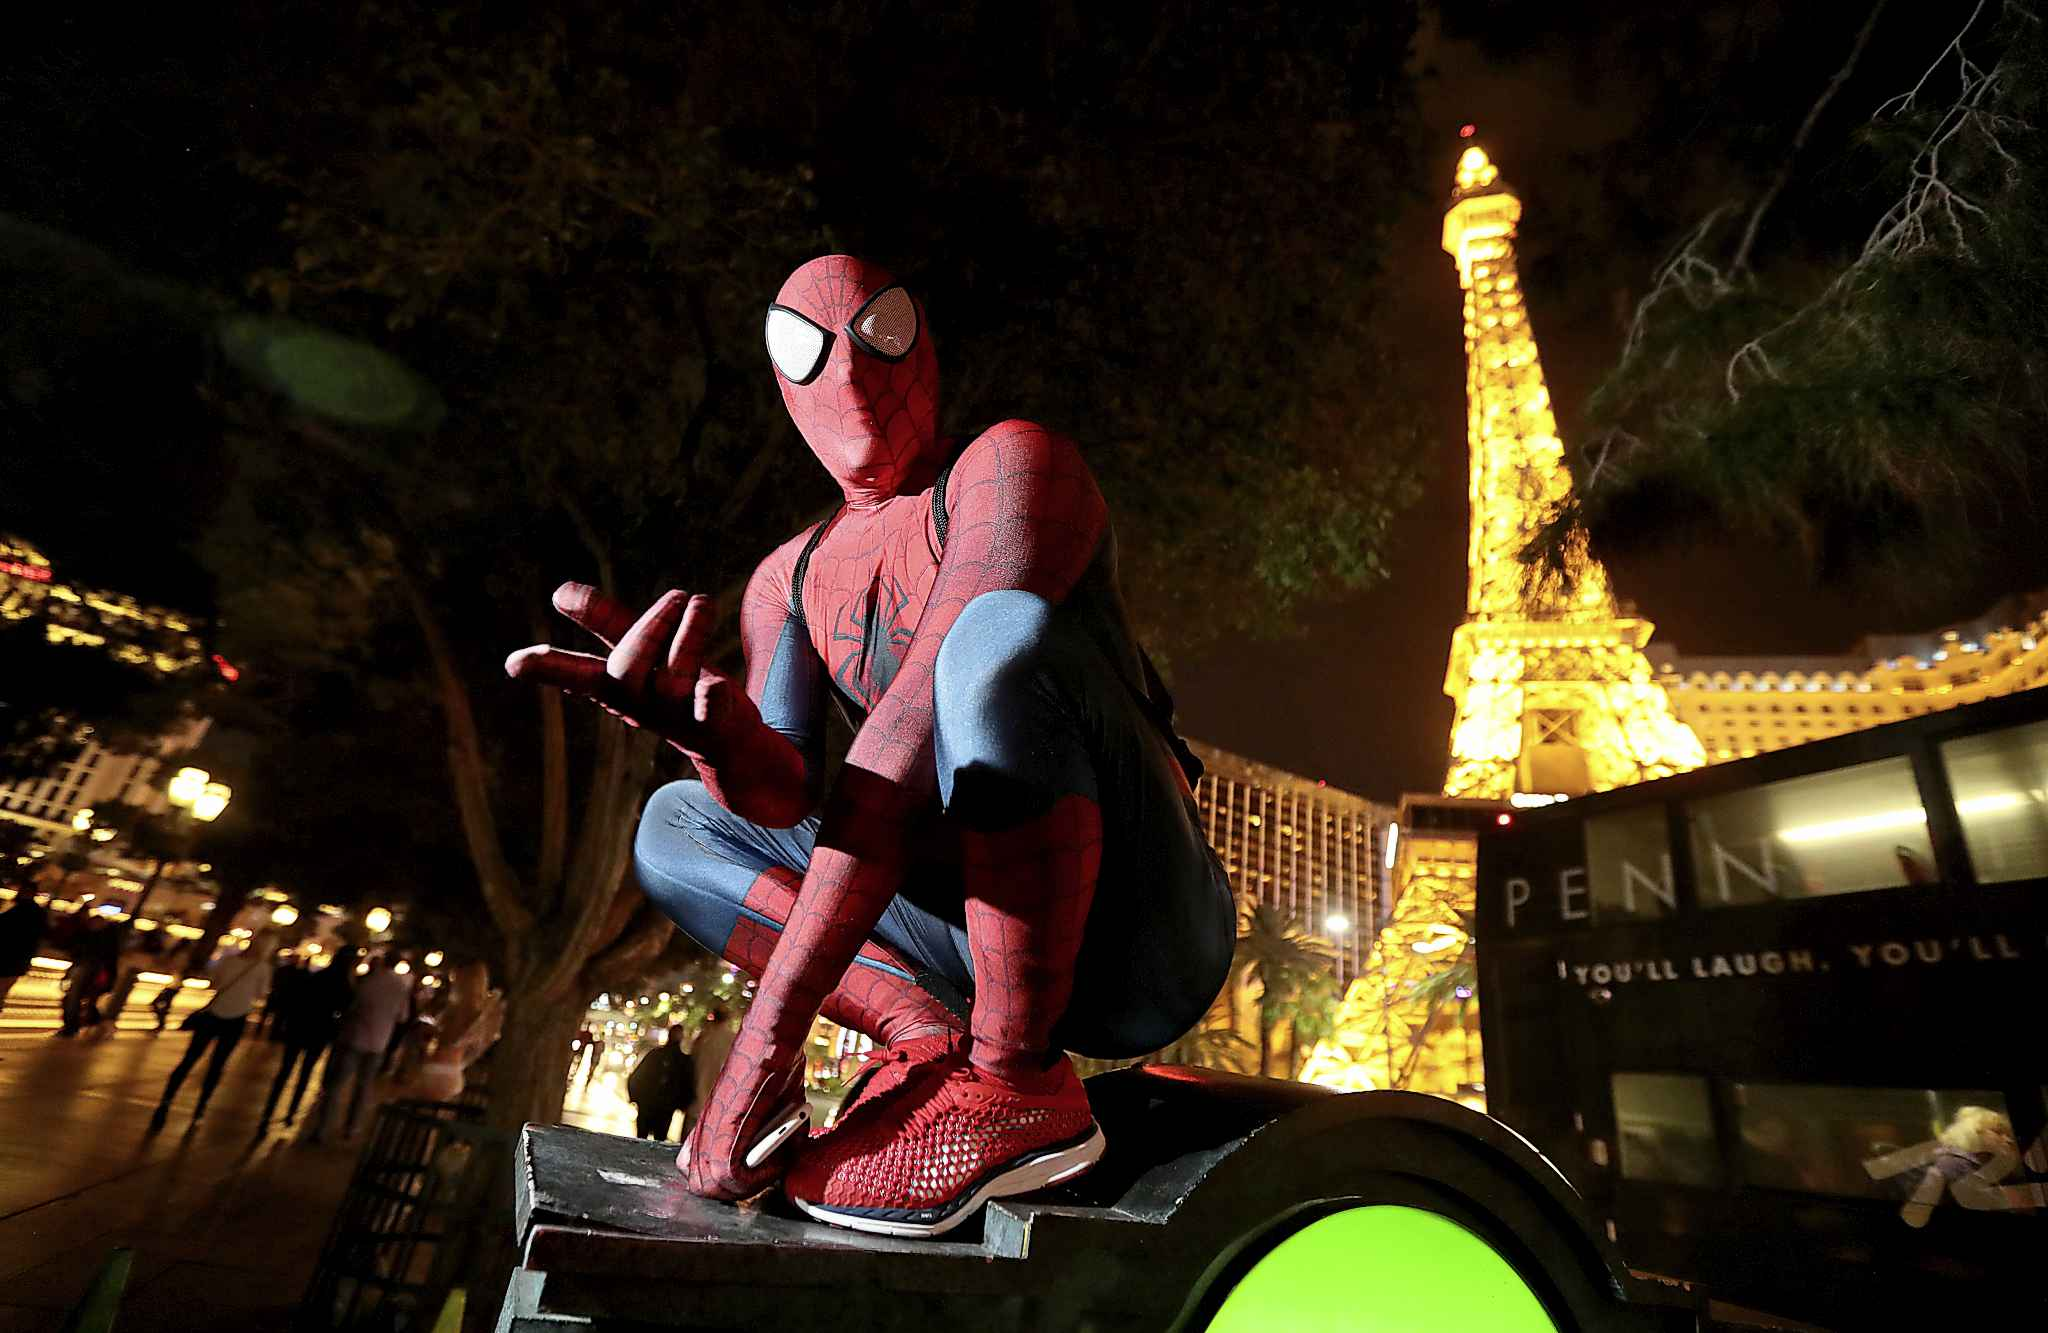 Derrick Tupper, from Houston, Texas, is a Spider-Man character near the fountain at the Bellagio.